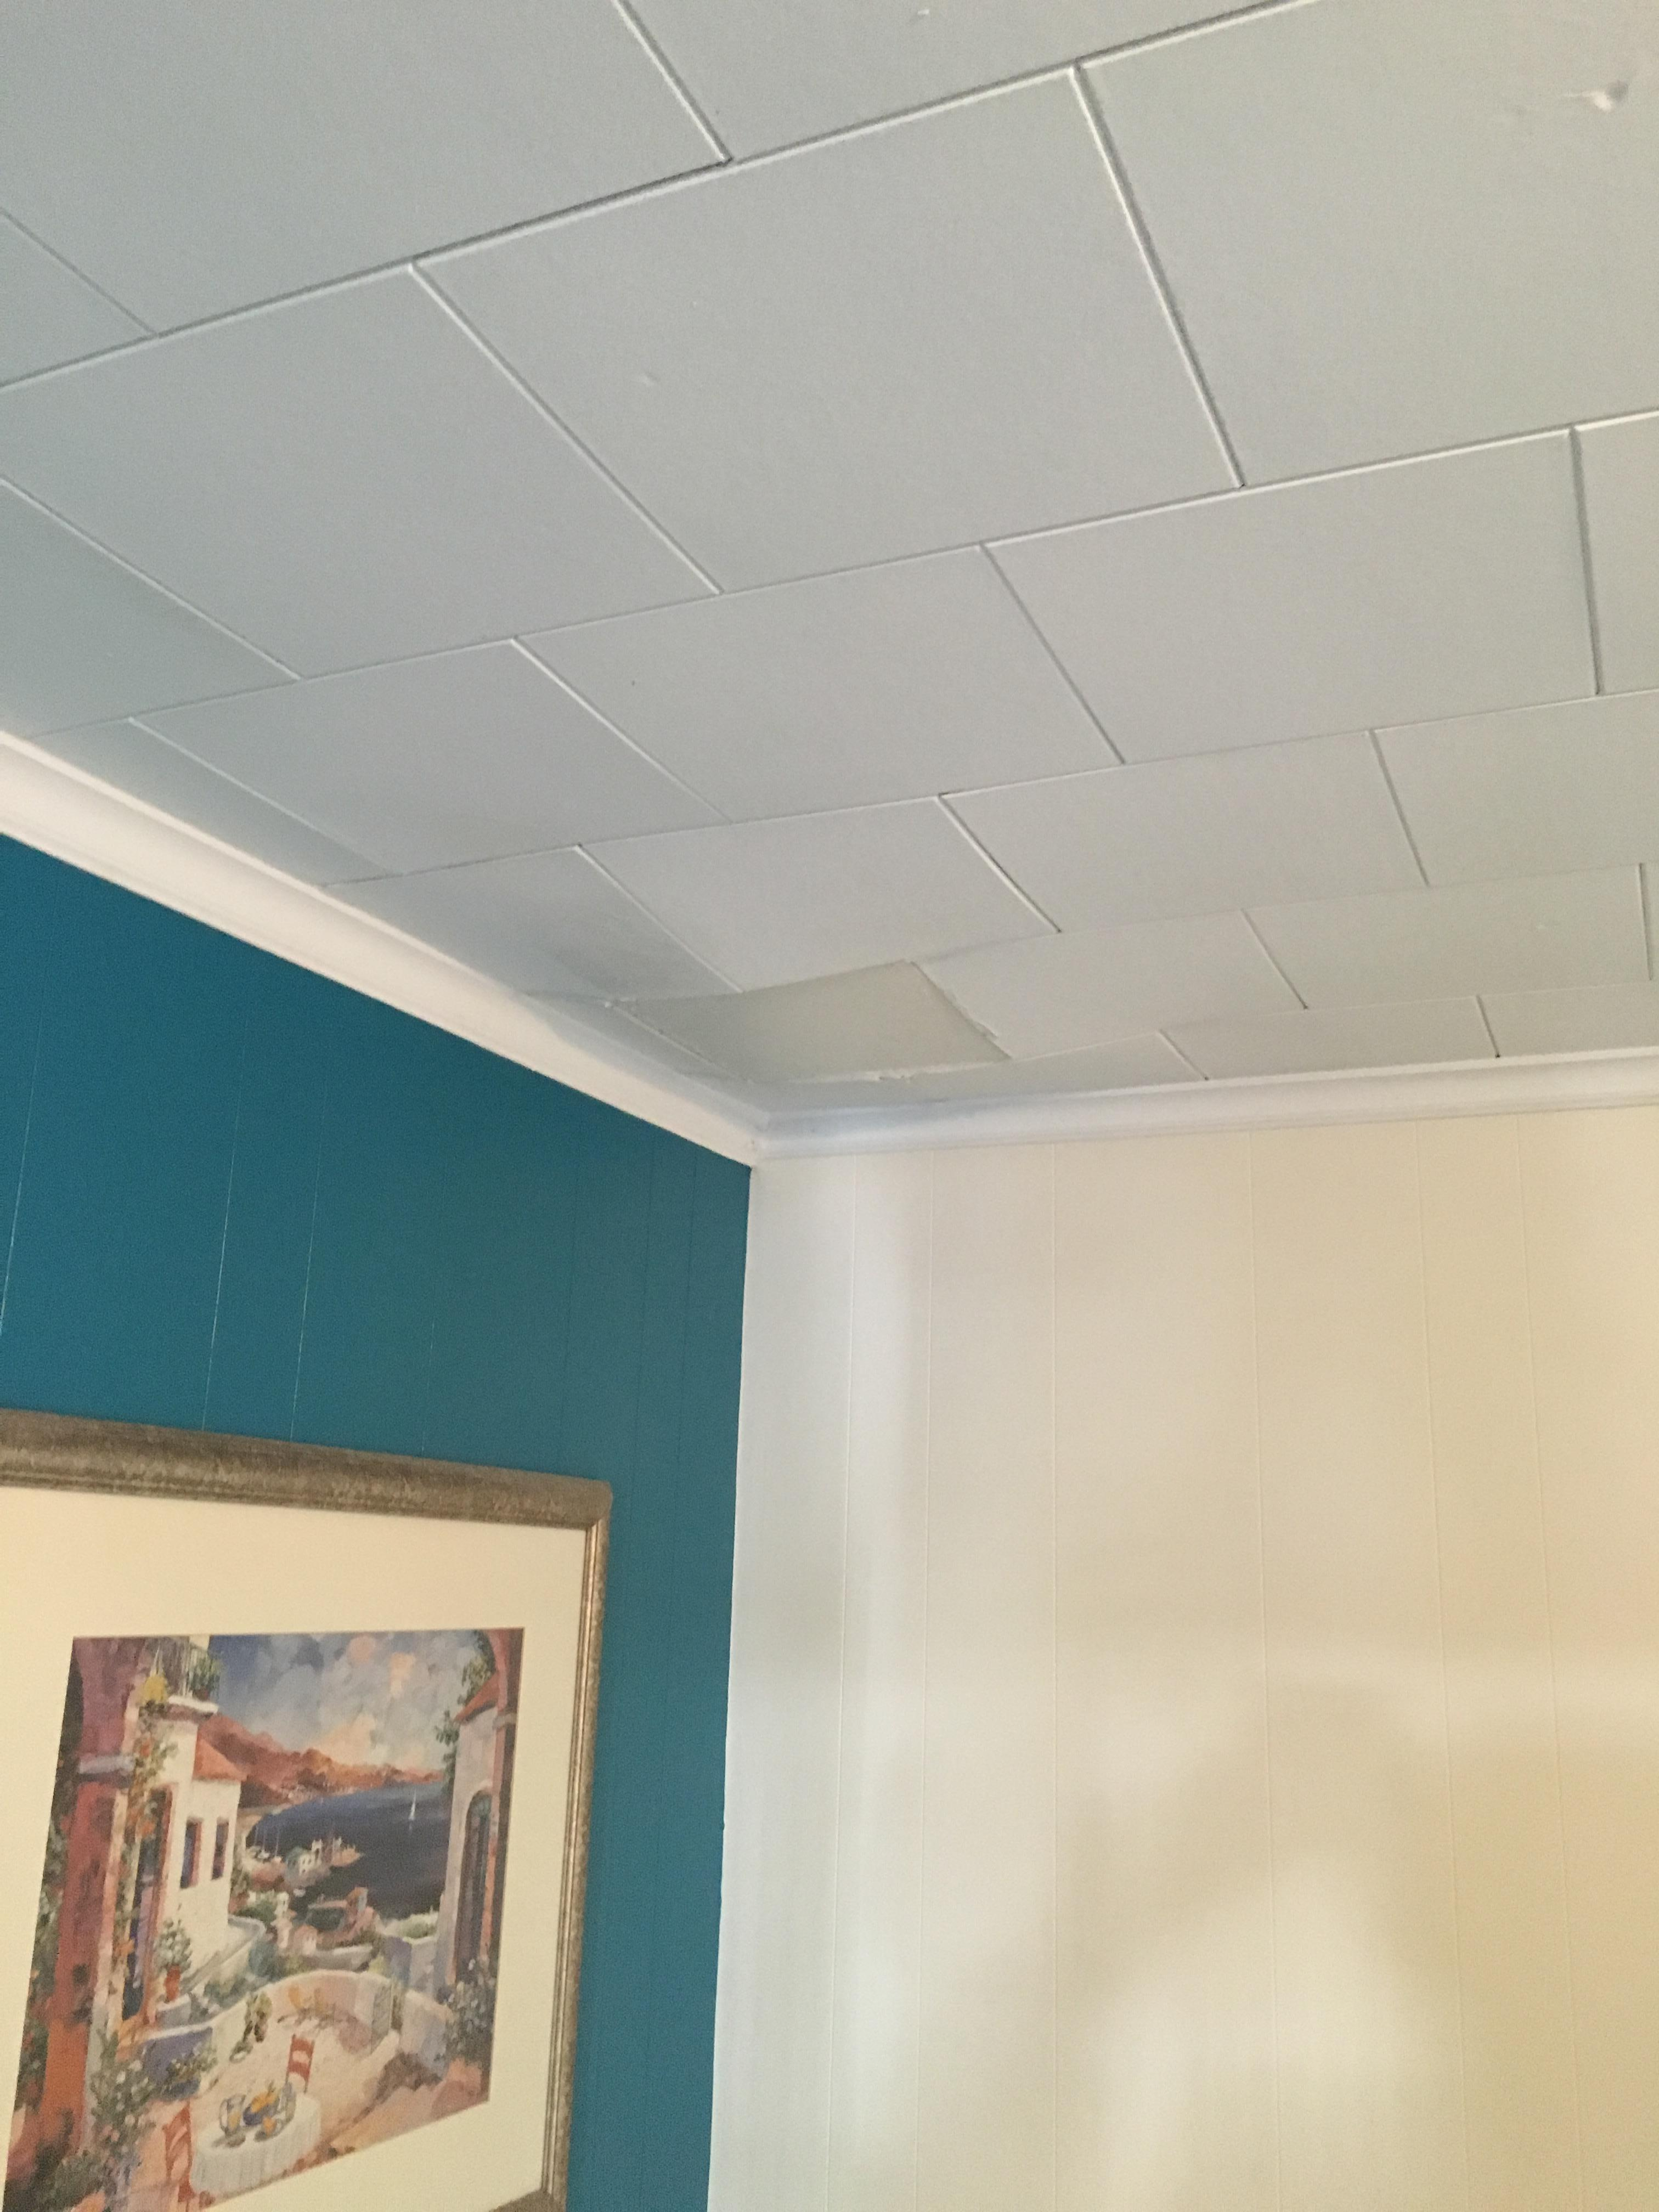 Cieling collapsing